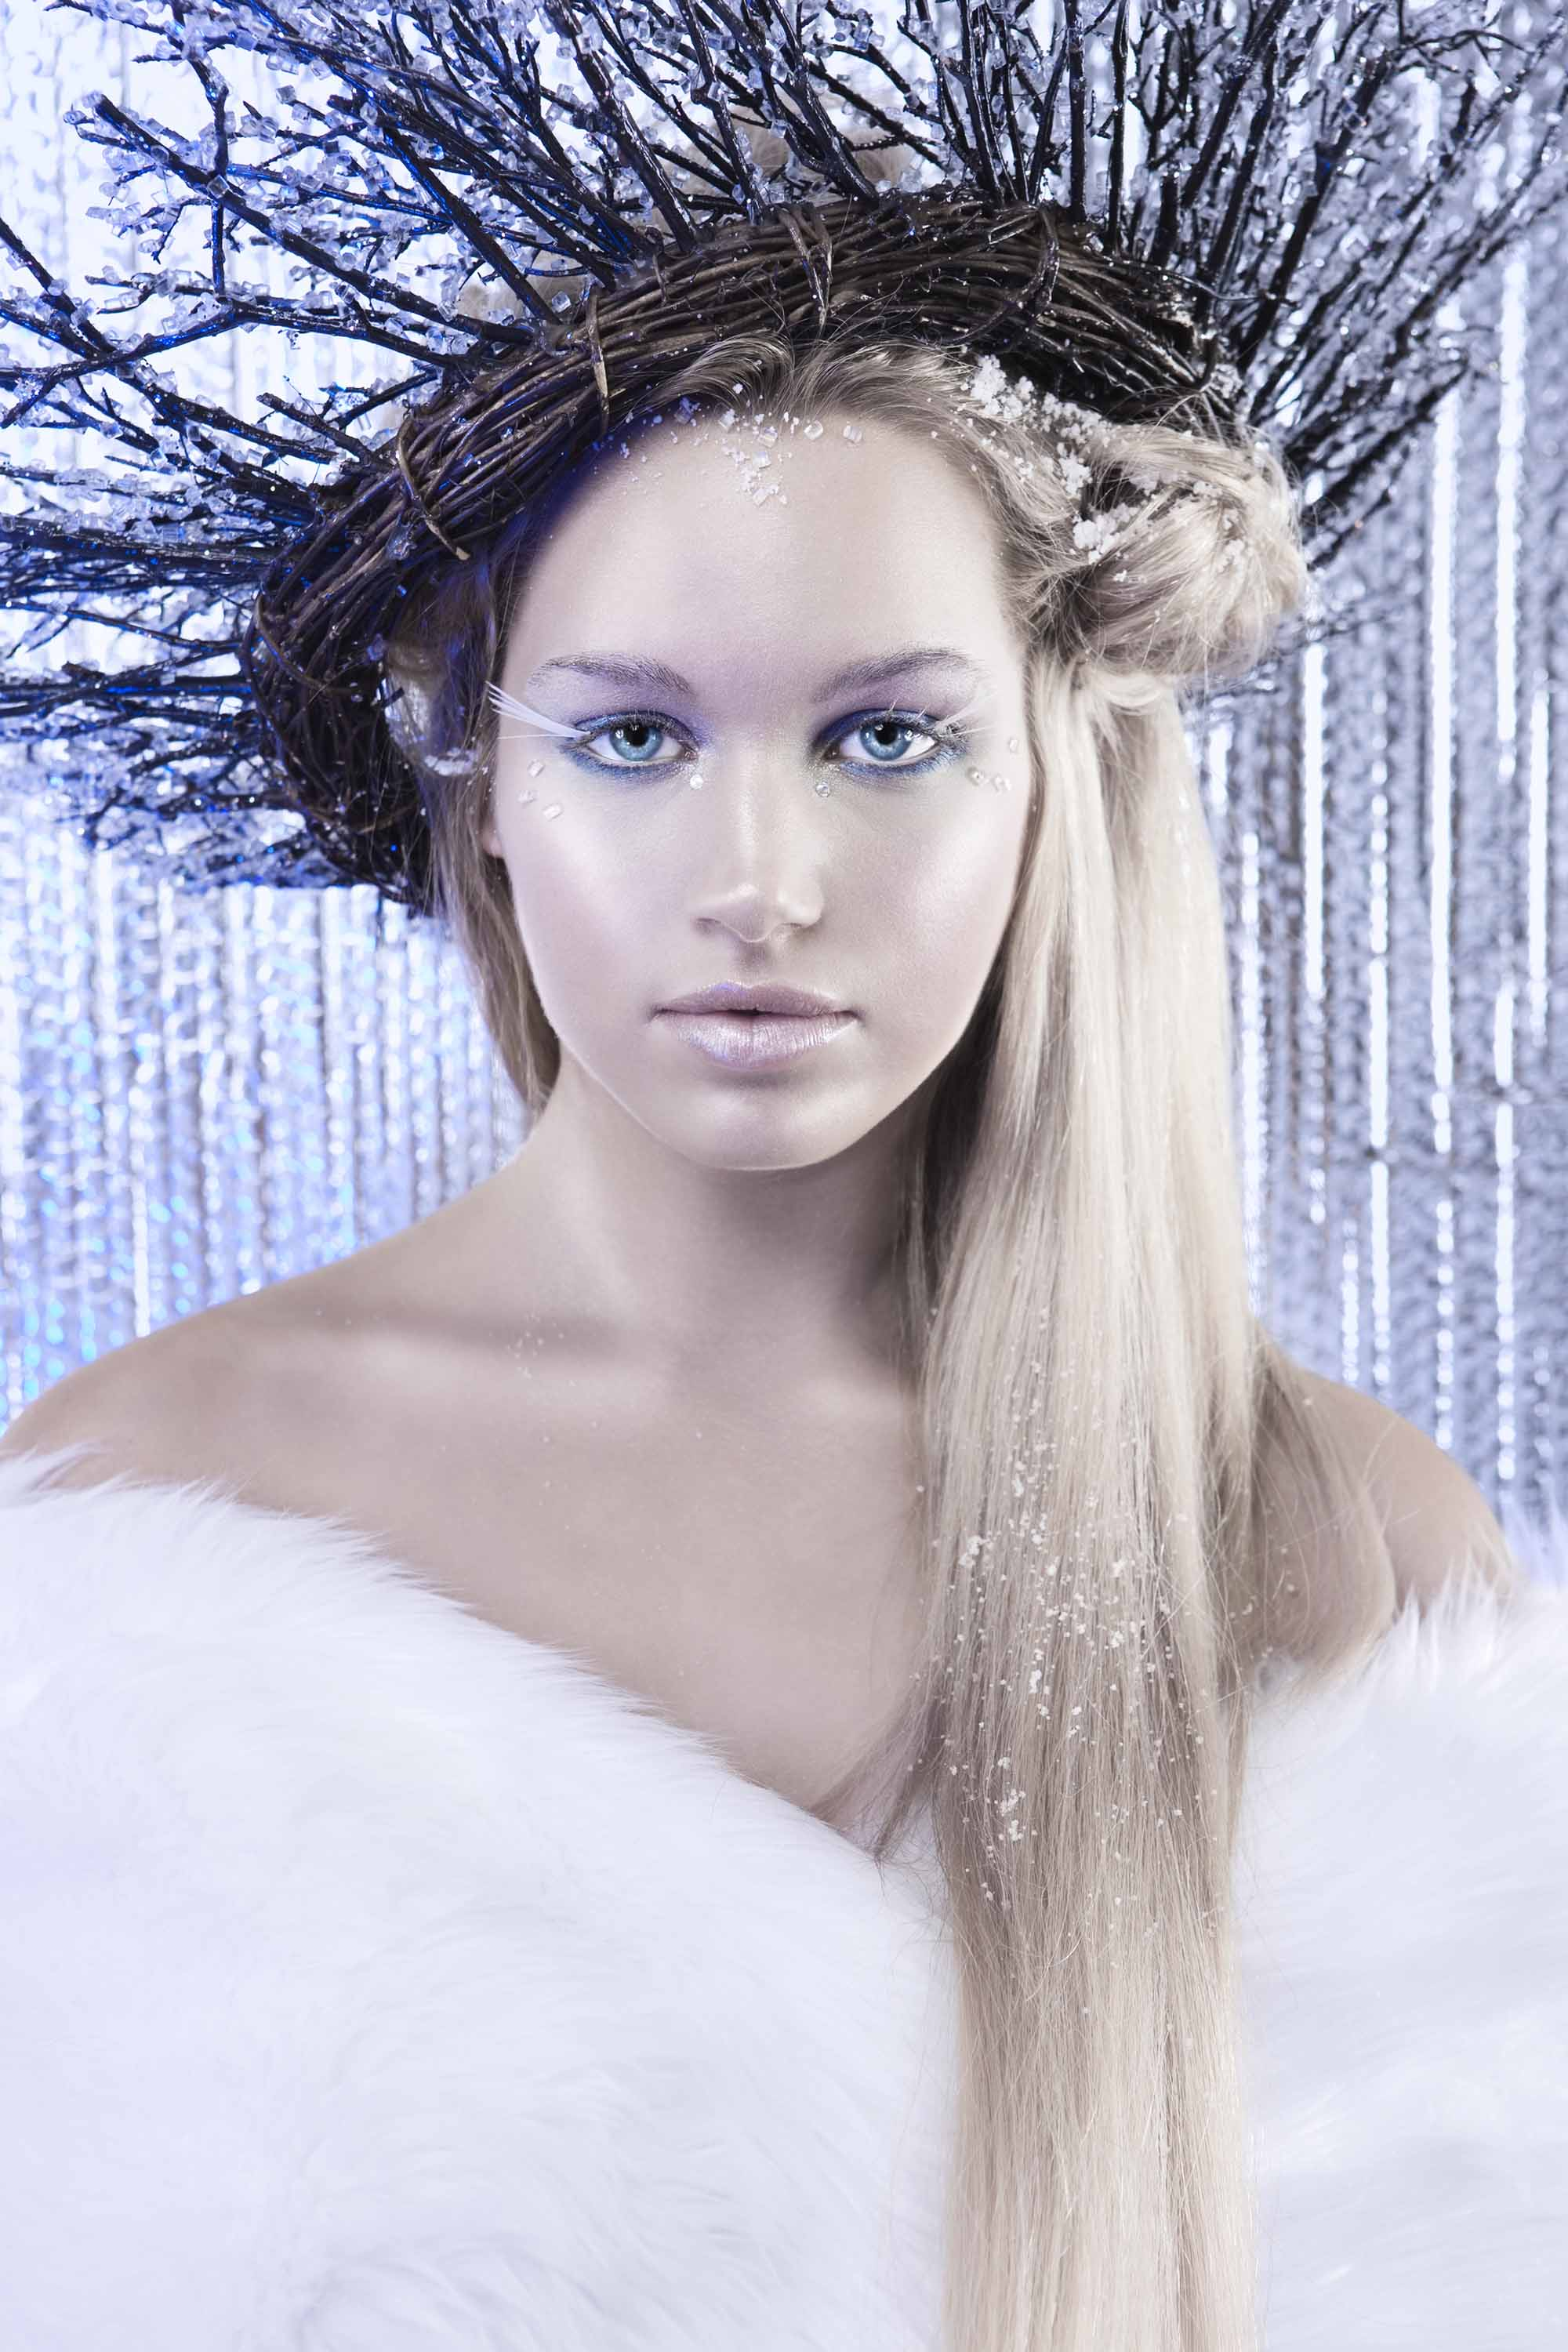 bac7004ed33 Halloween hairstyles  Woman dressed as an ice queen with long blonde hair  wearing white fur